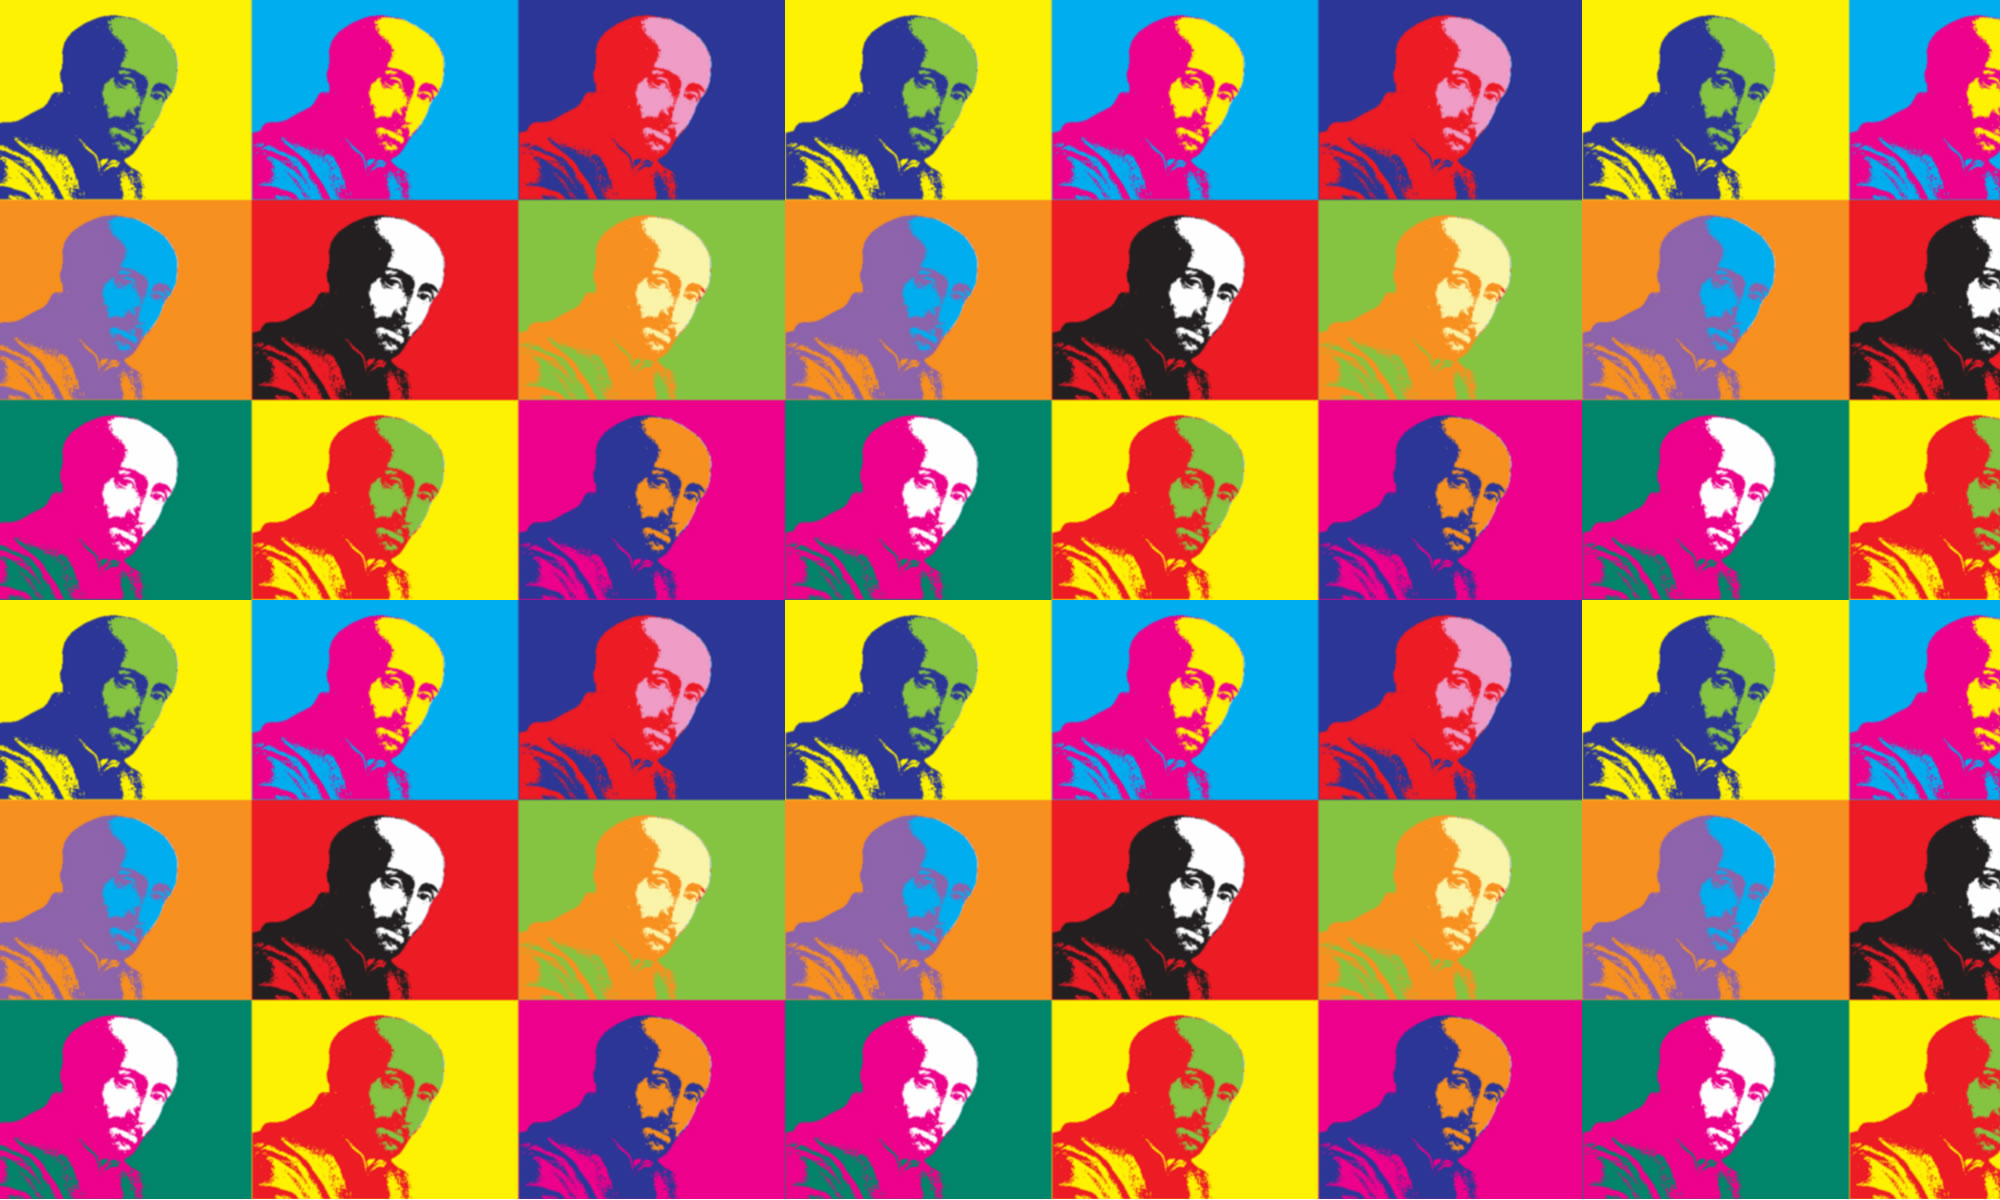 Ignace pop art